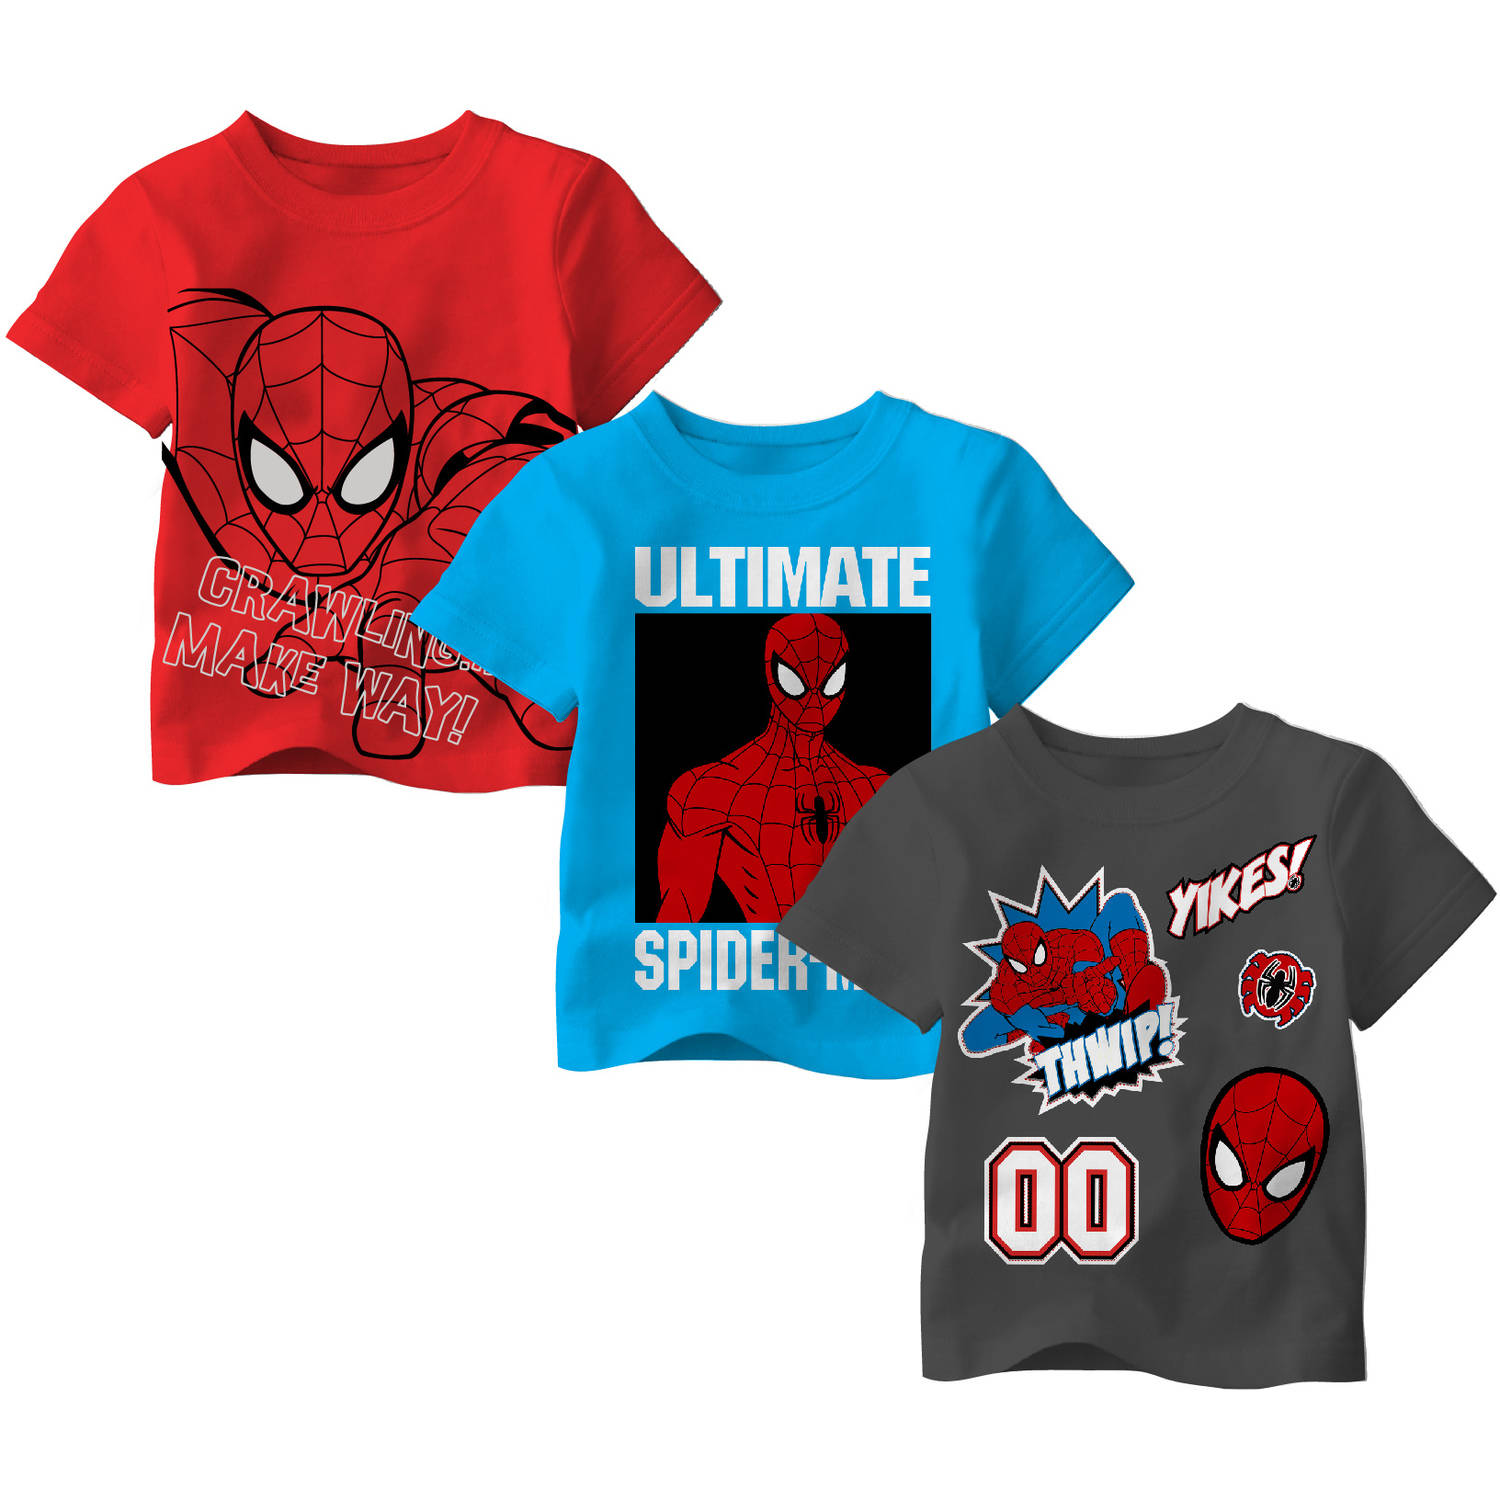 Ultimate Spiderman Toddler Boy Tee Shirt, 3 pack - Online Exclusive